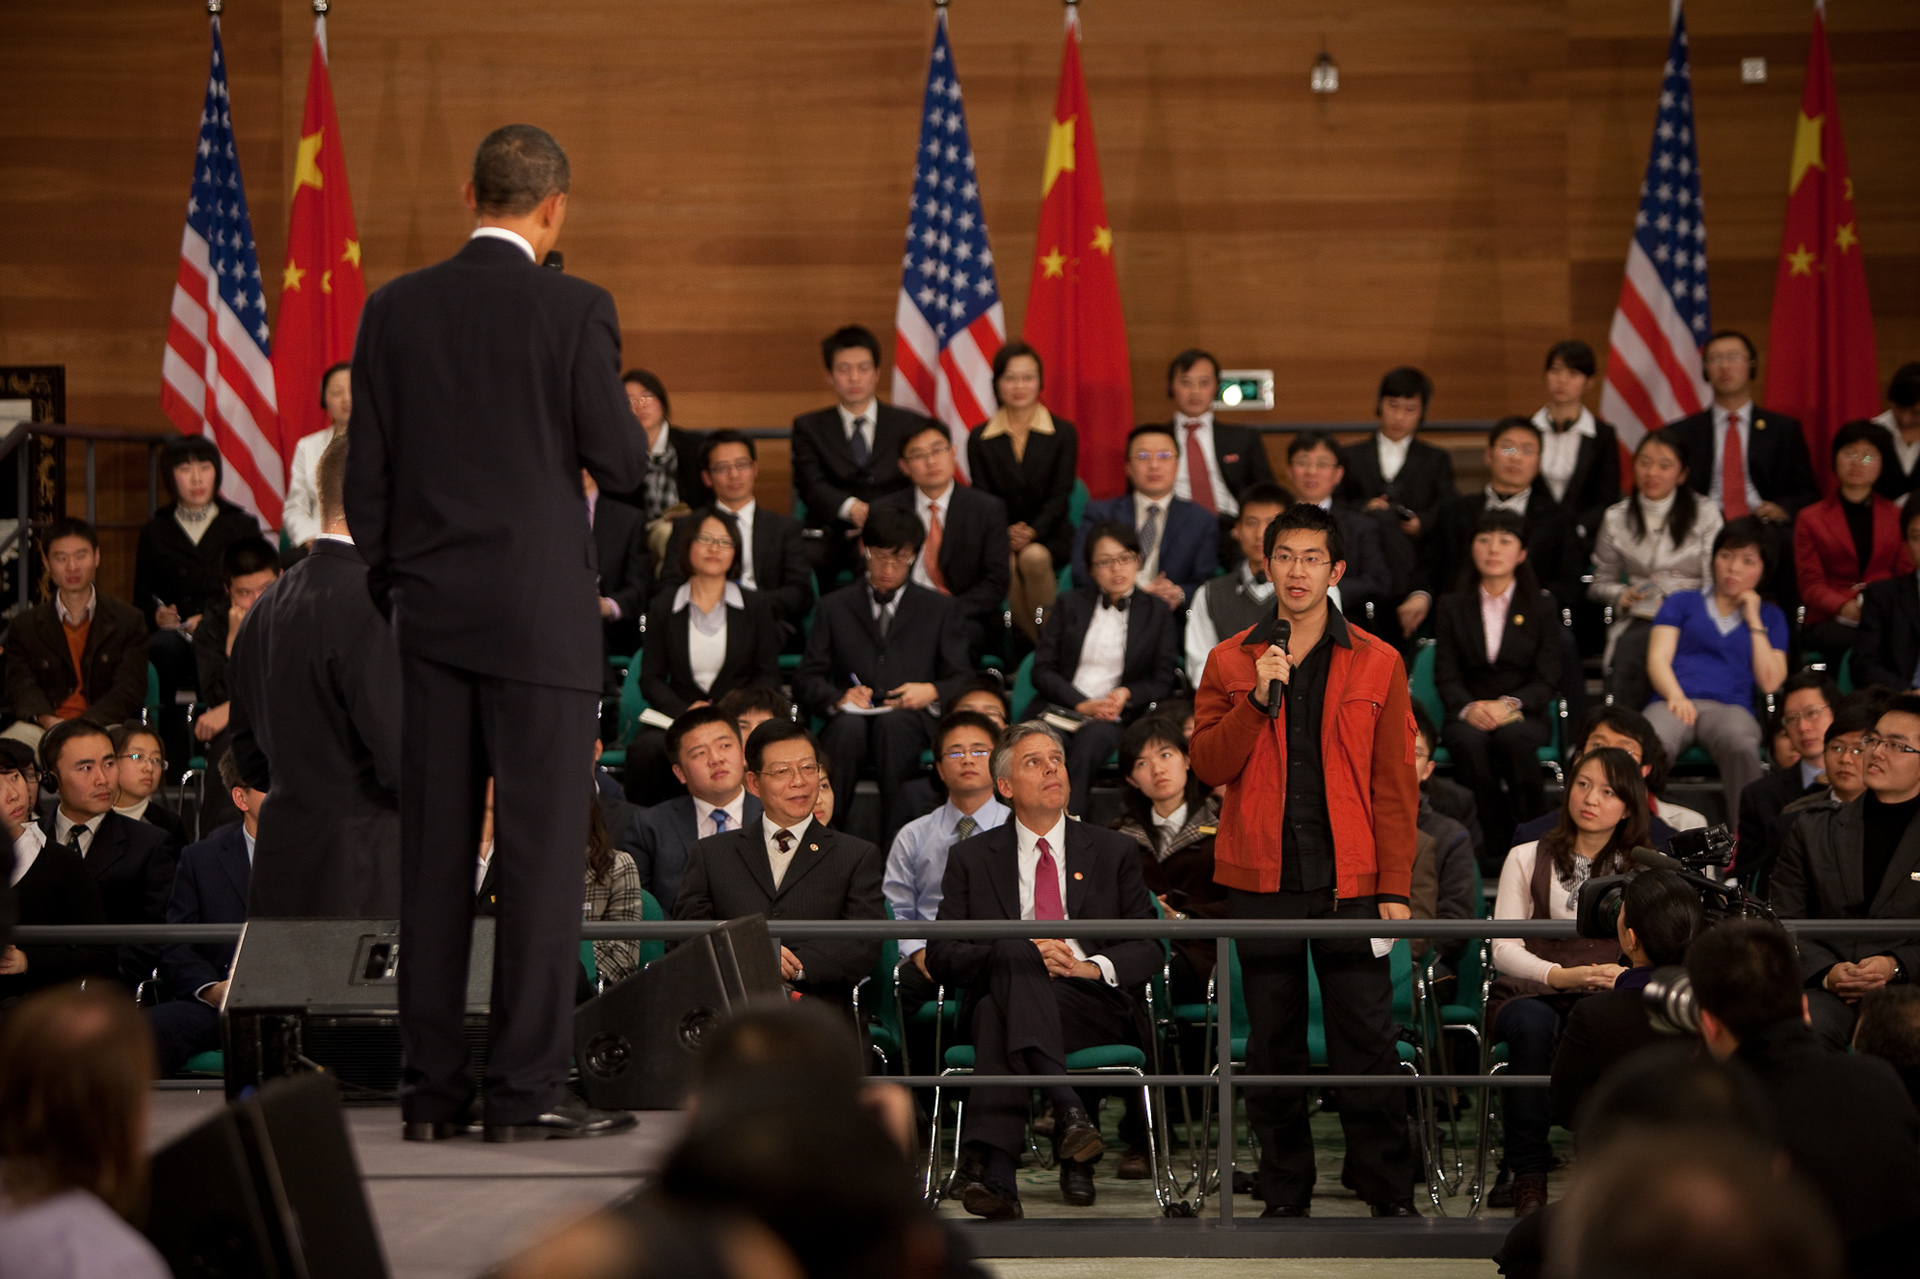 President Barack Obama listens to a question at the town hall meeting with future Chinese leaders